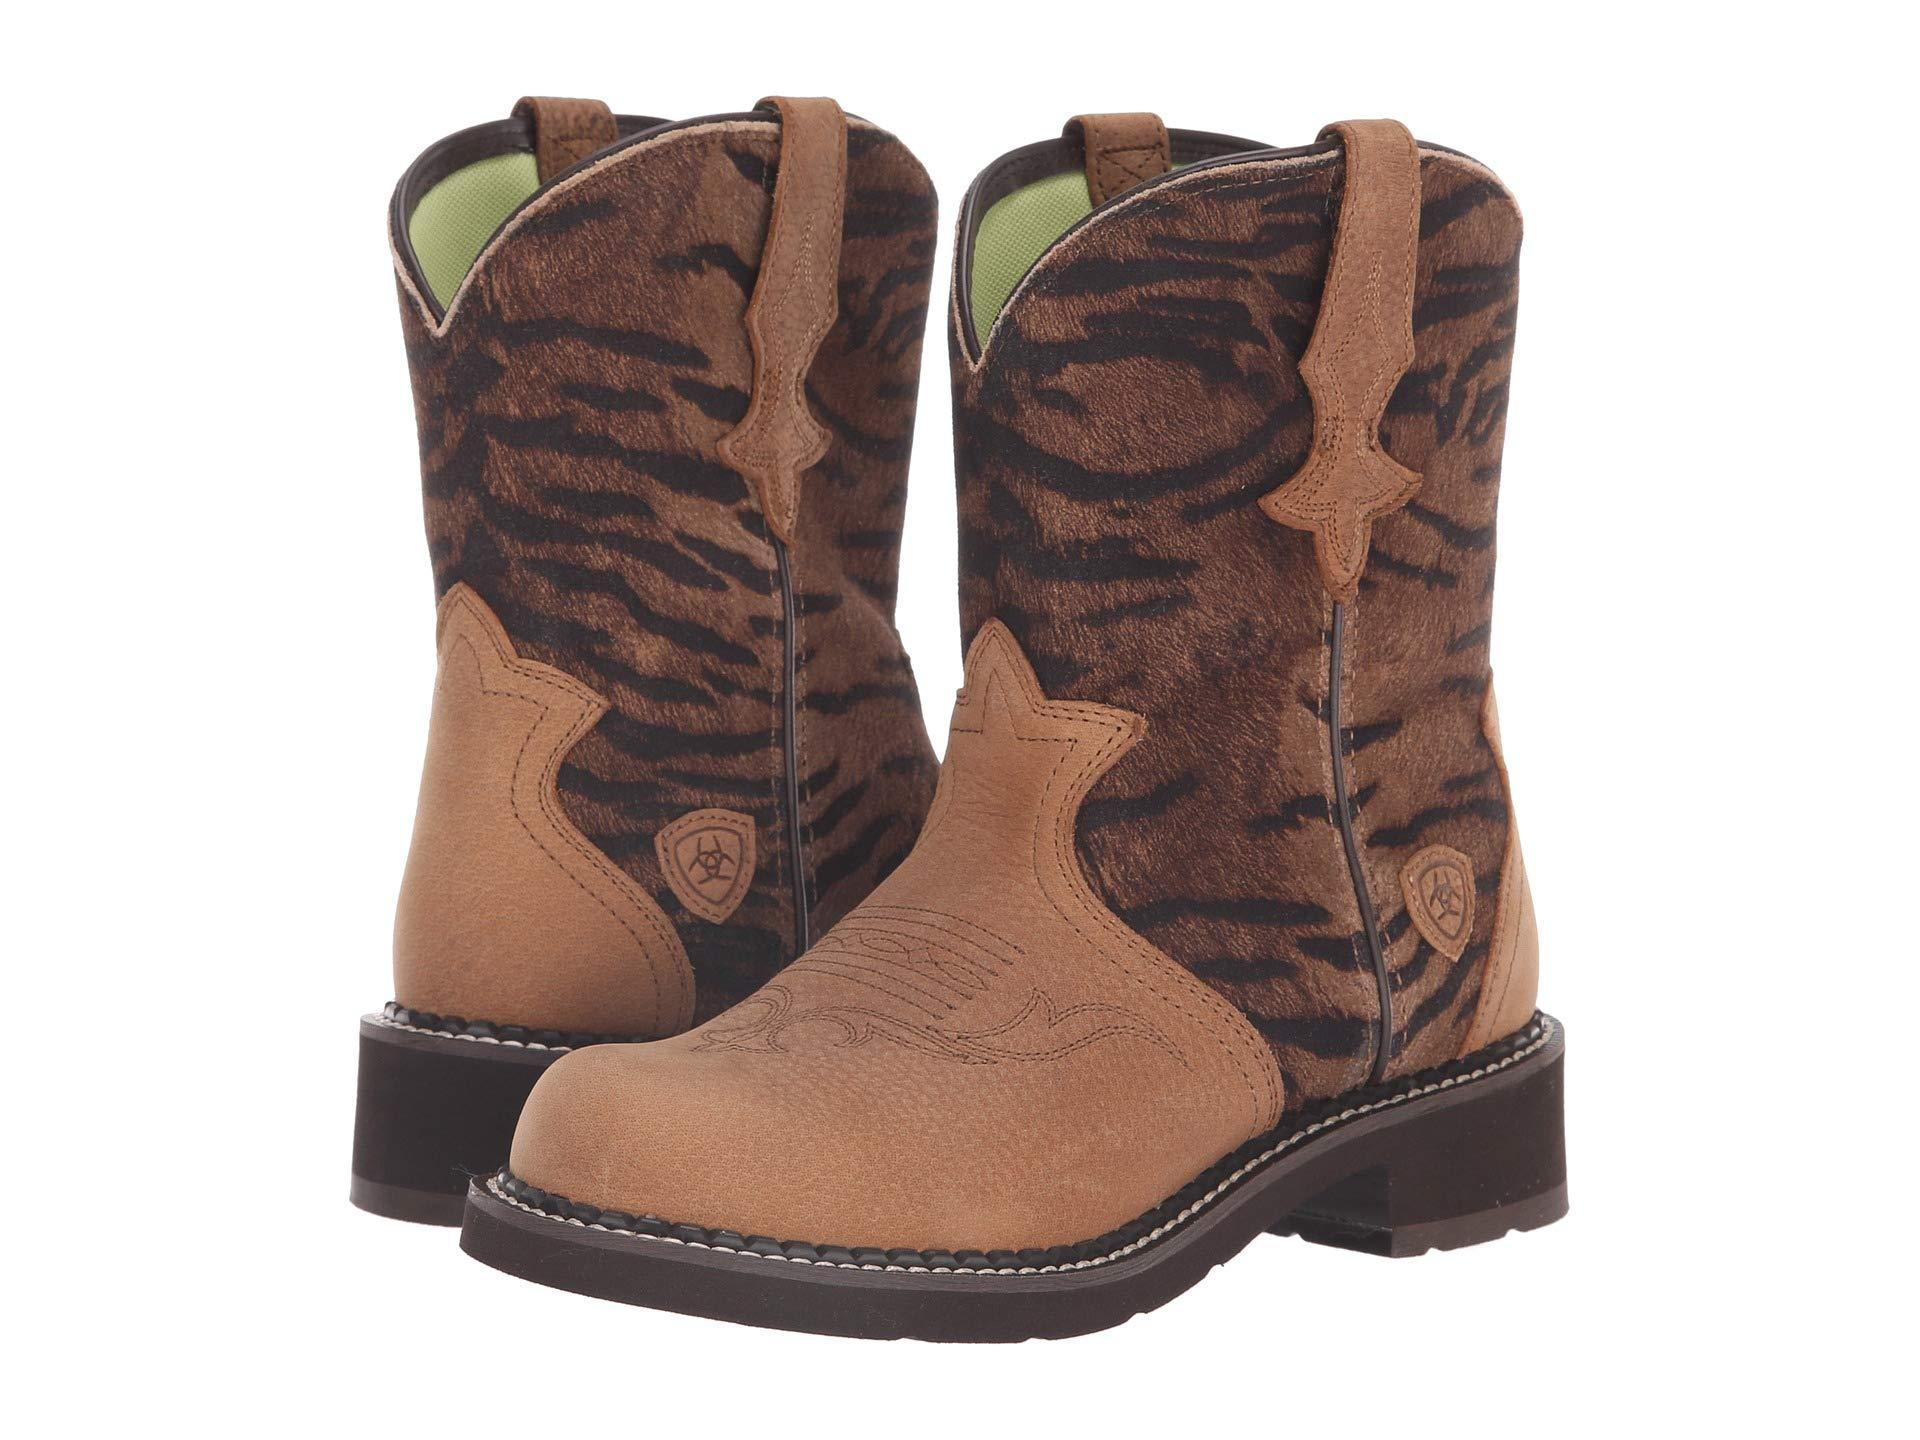 c3a9c167372 Lyst - Ariat Fatbaby Heritage Trio in Brown